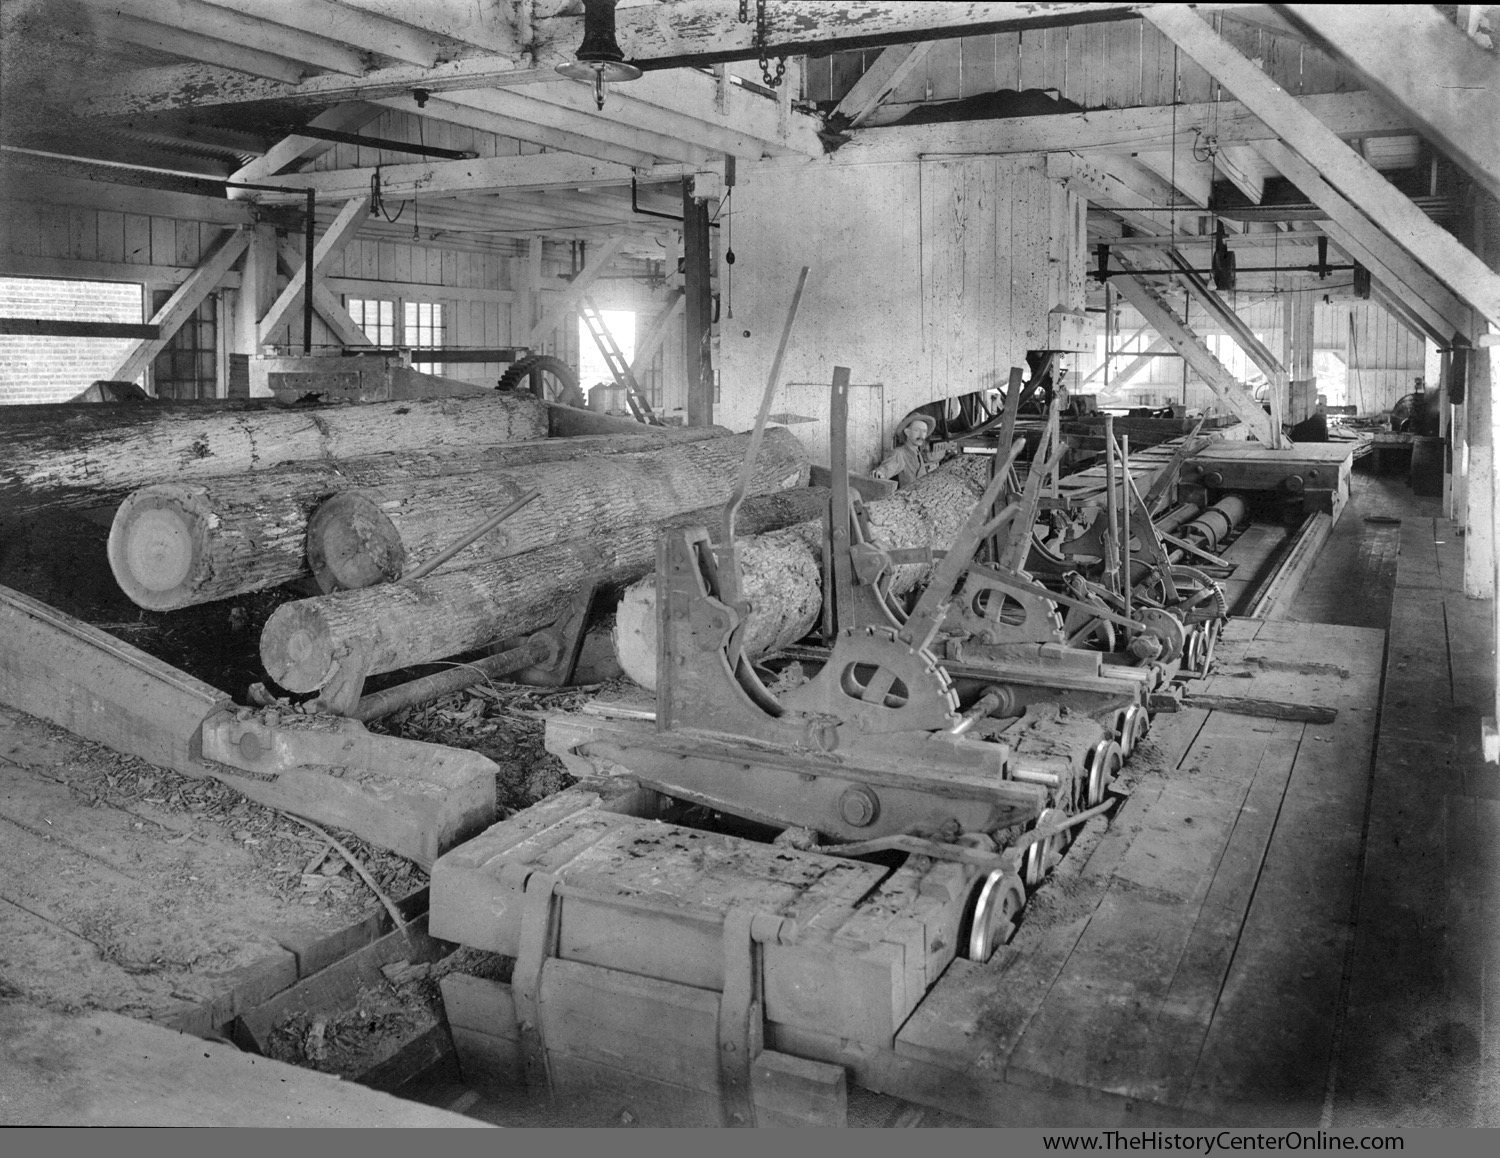 1907 An interior view of the Southern Pine Lumber Company